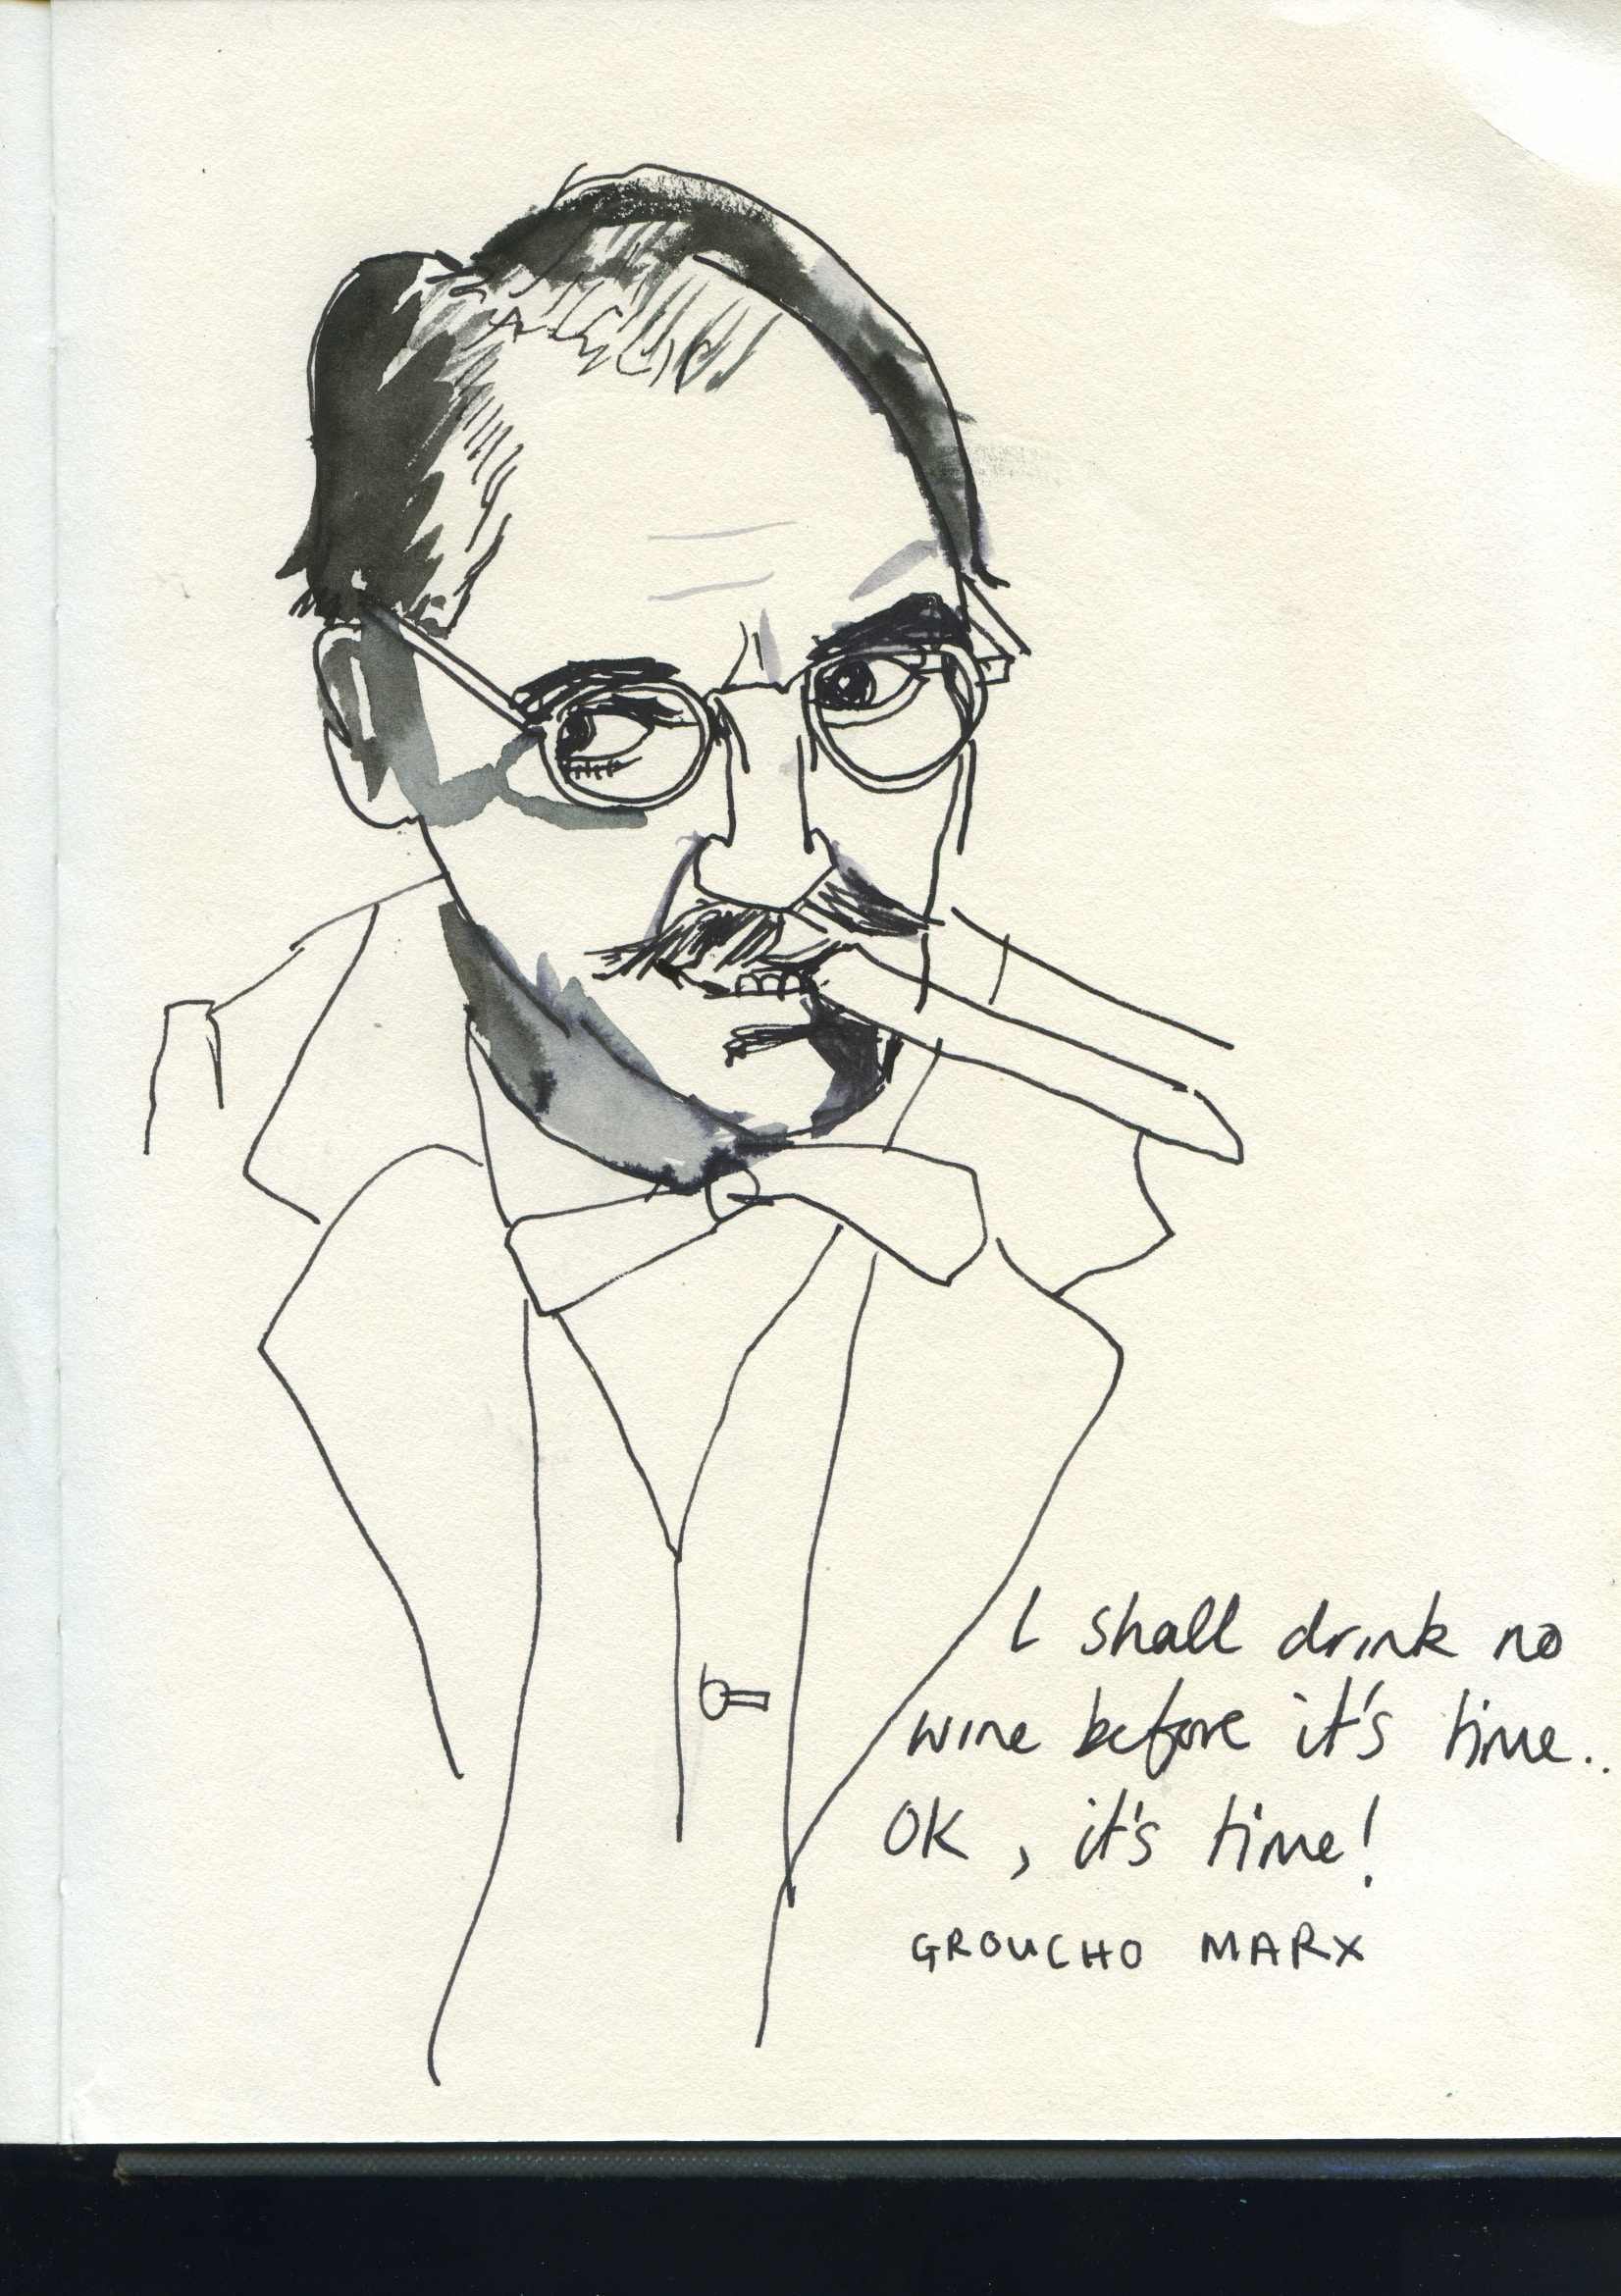 Groucho Marx quote and portrait